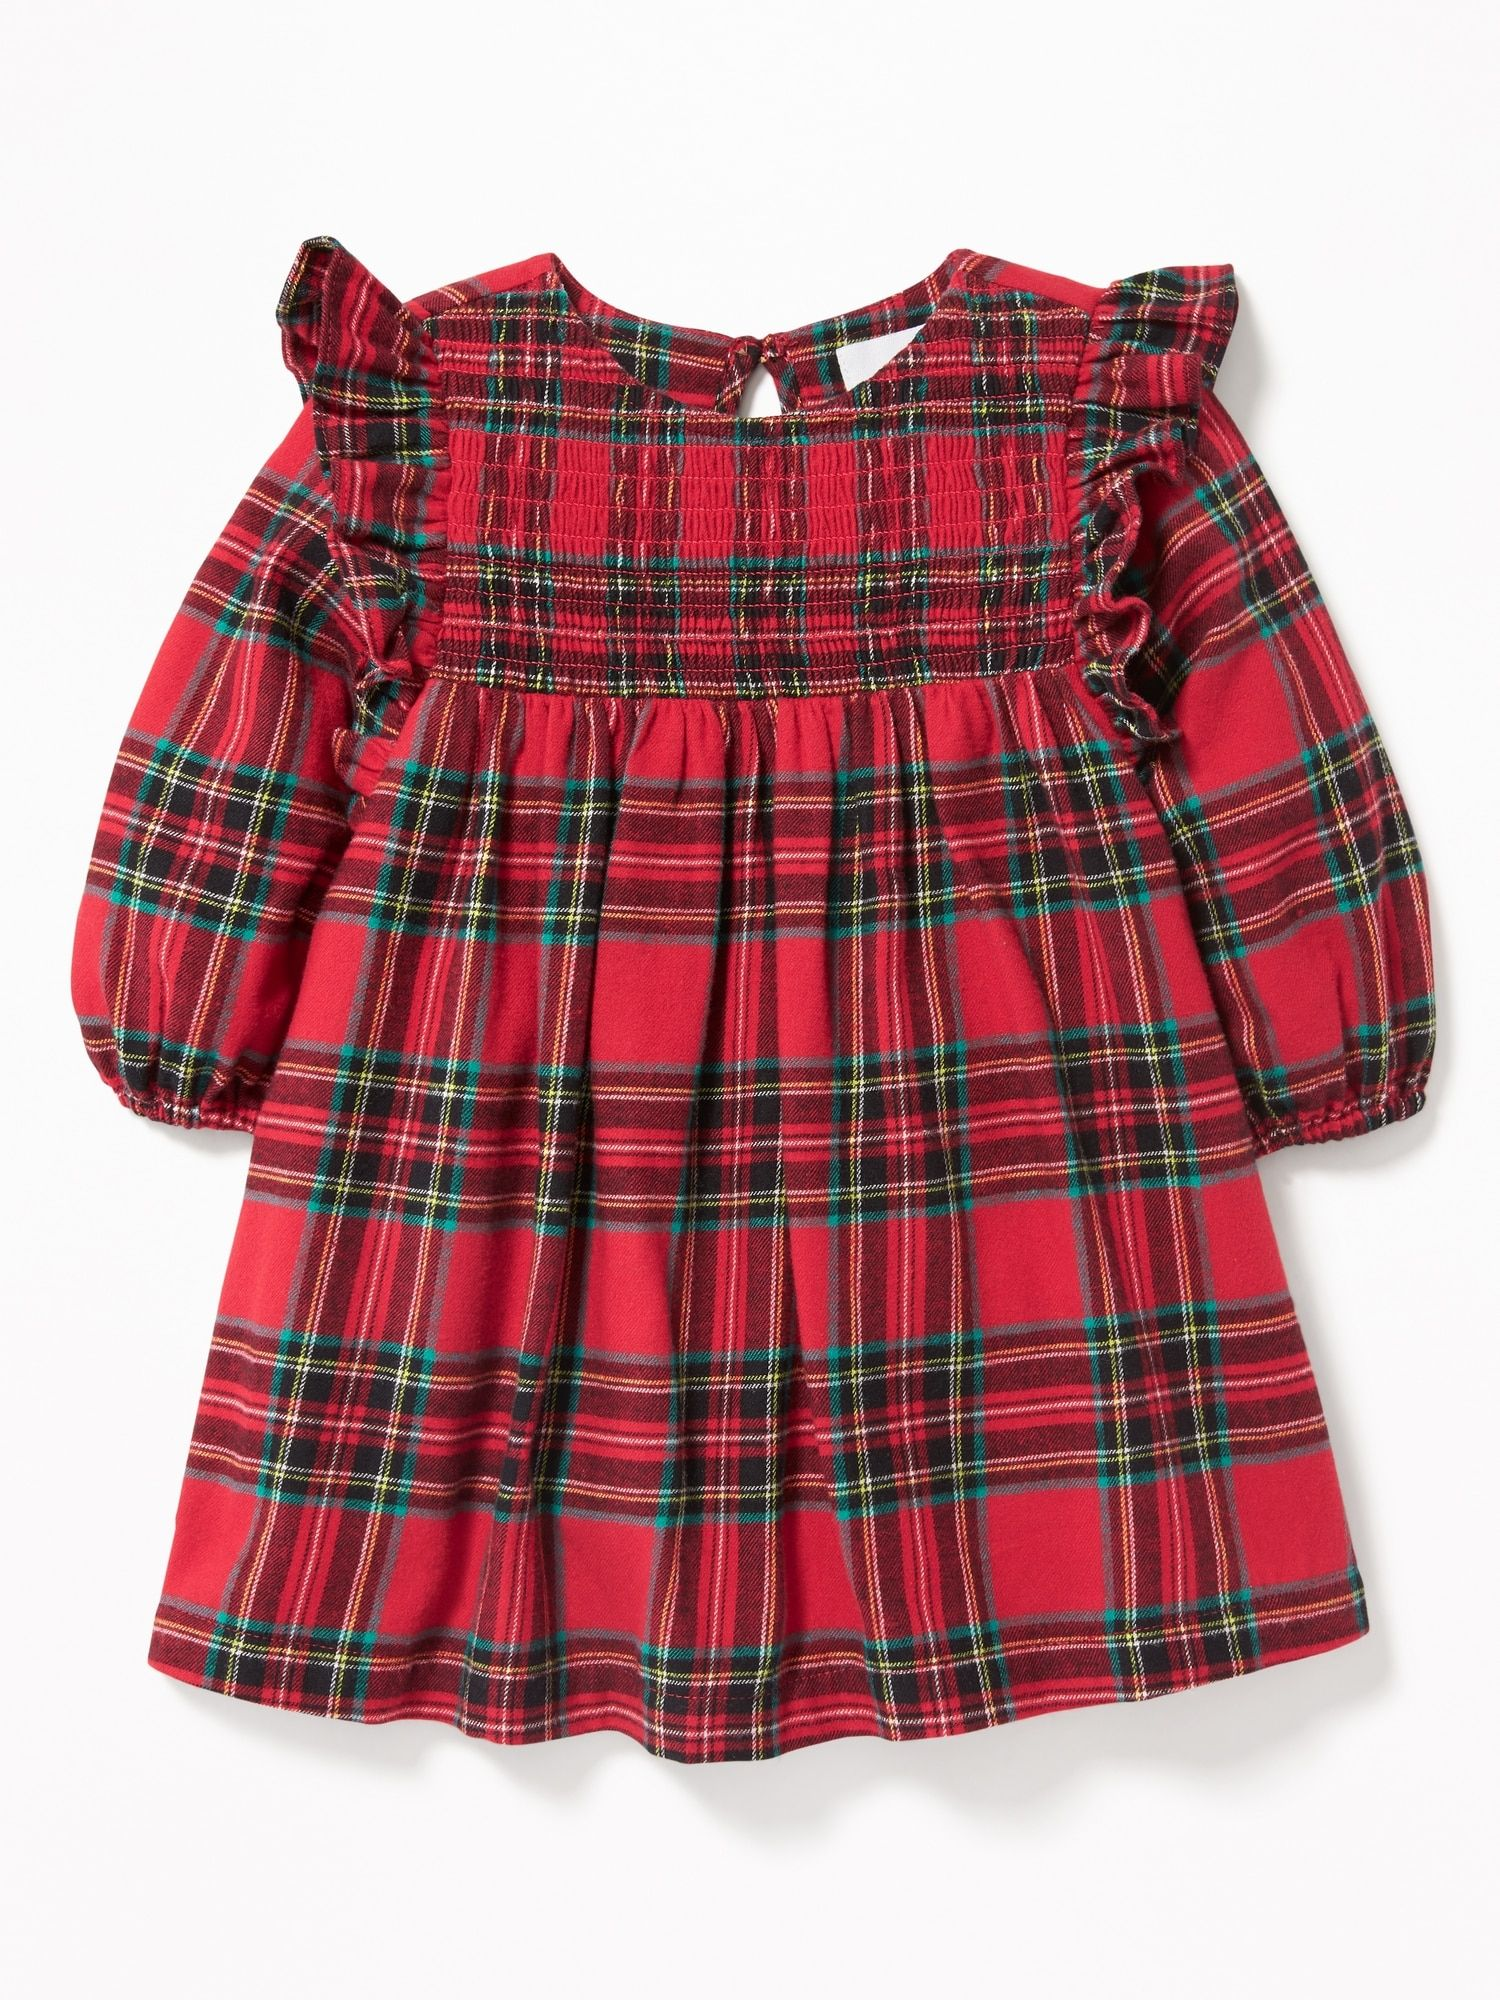 Plaid Ruffle Trim Dress For Baby Old Navy Toddler Christmas Dress Ruffle Trim Dress Newborn Dresses